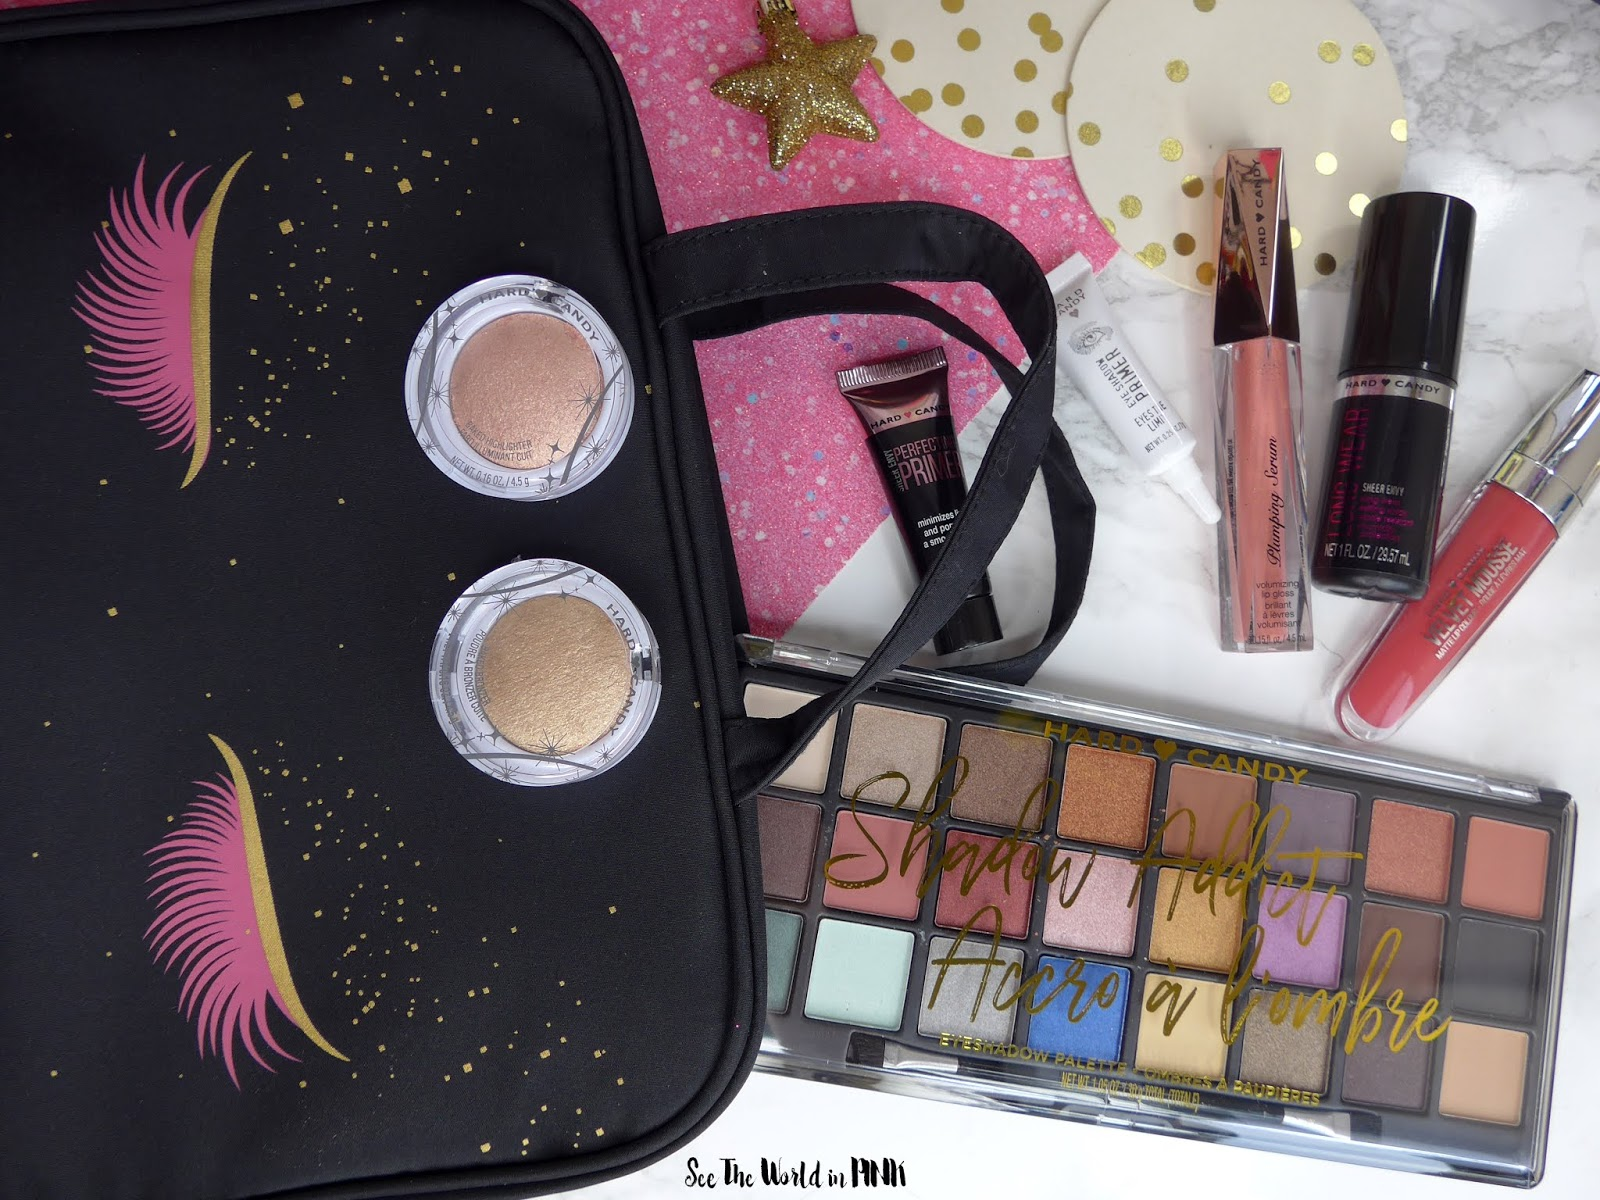 Hard Candy Holiday Set - My Bag of Tricks Travel Cosmetic